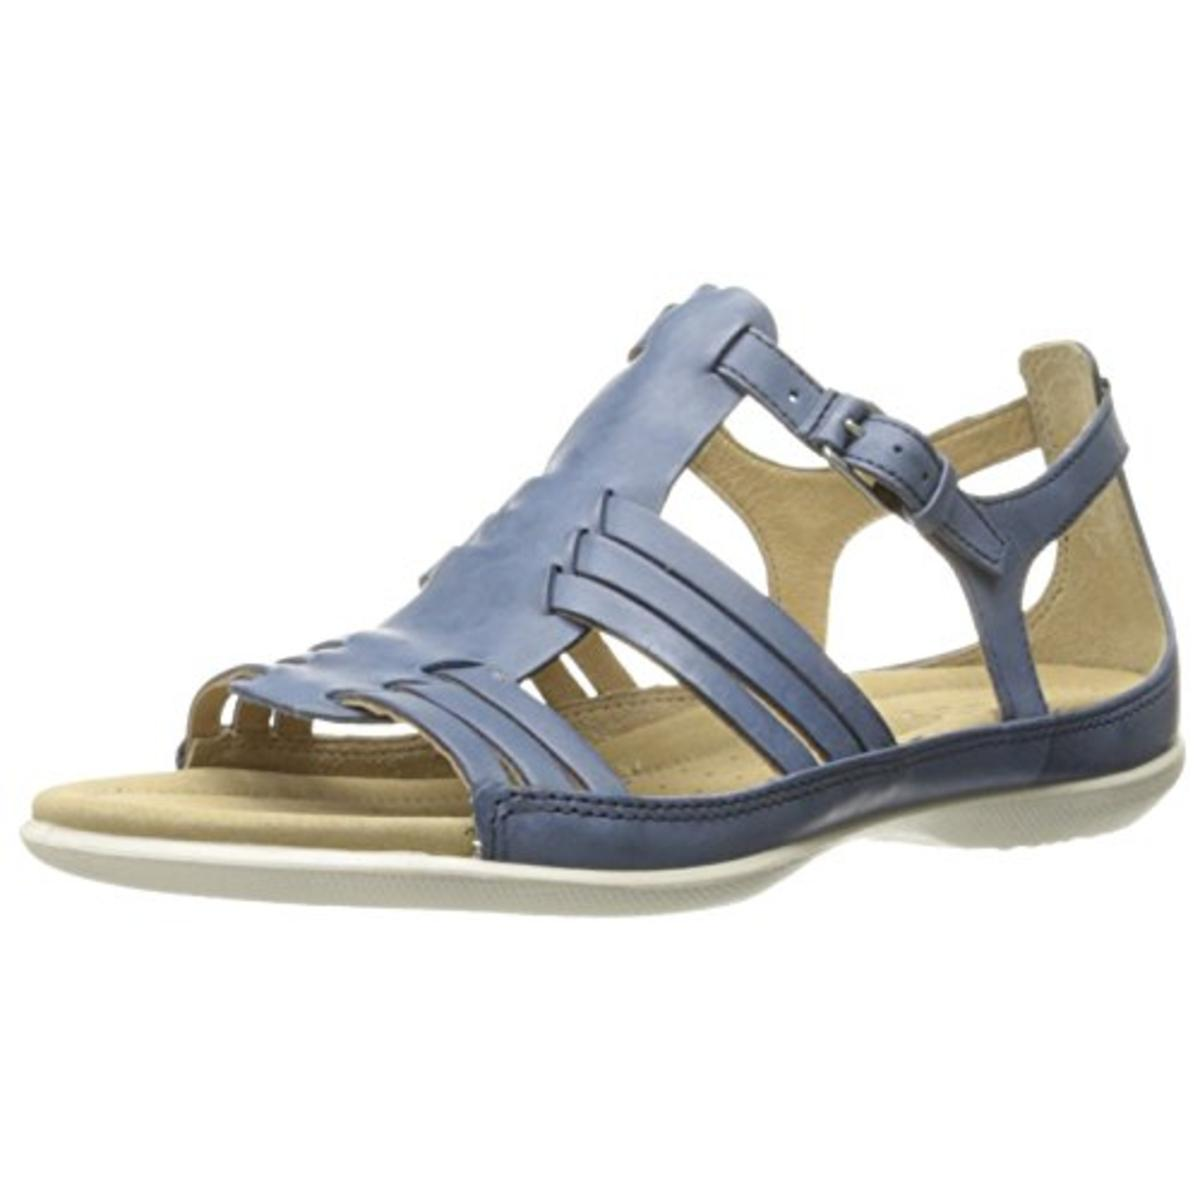 Ecco Womens Flash Leather Strappy Huarache Sandals